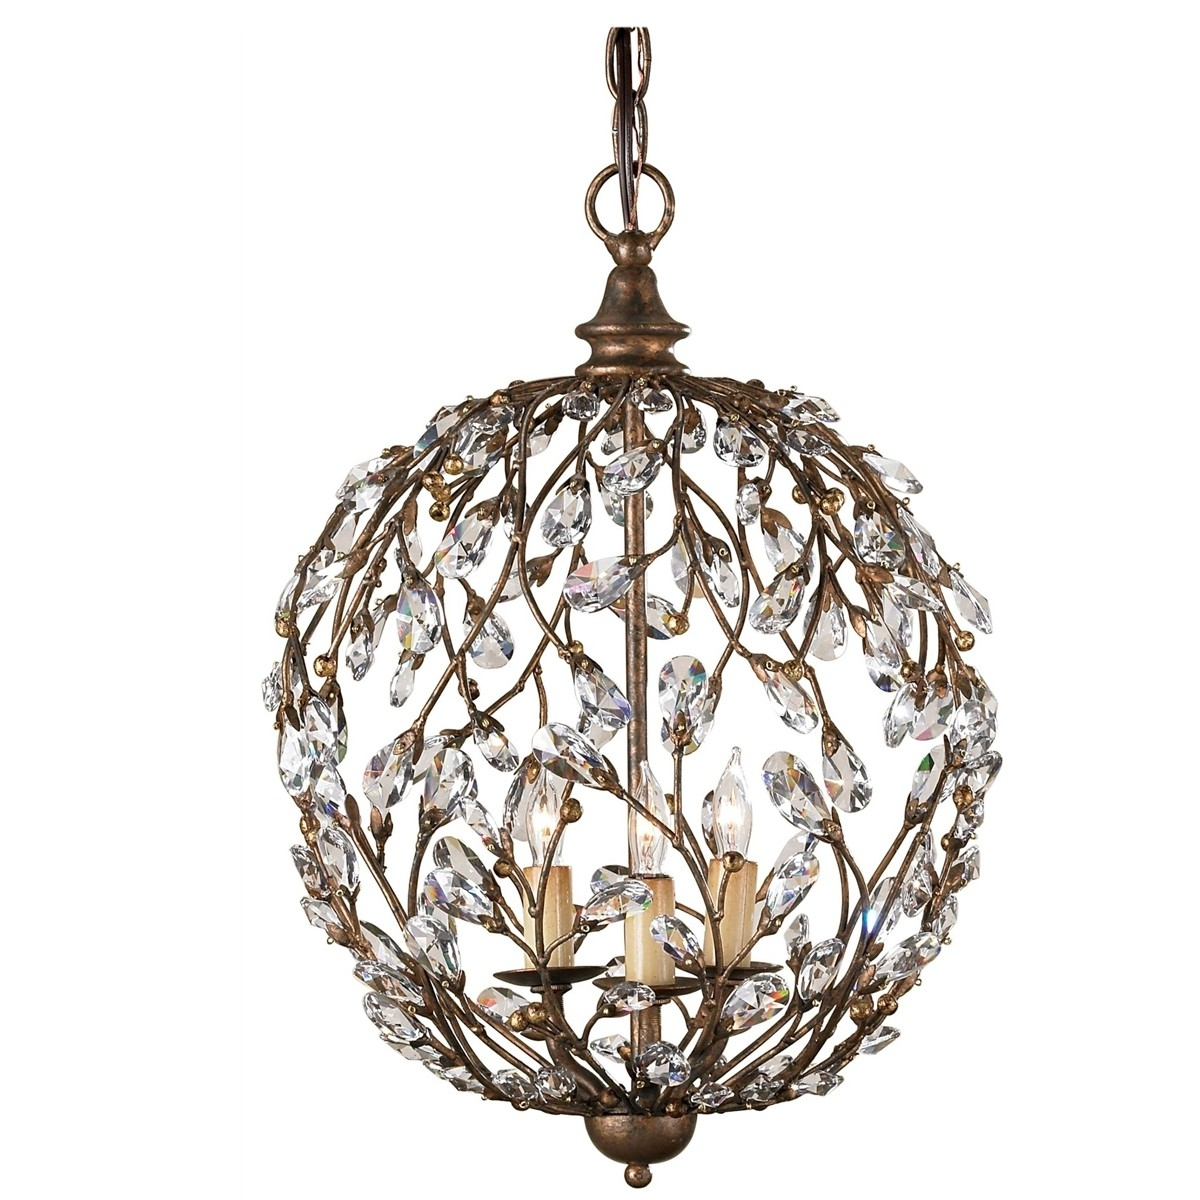 Crystal Bronzed Globe Chandelier Regarding Widely Used Crystal Globe Chandelier (View 19 of 20)